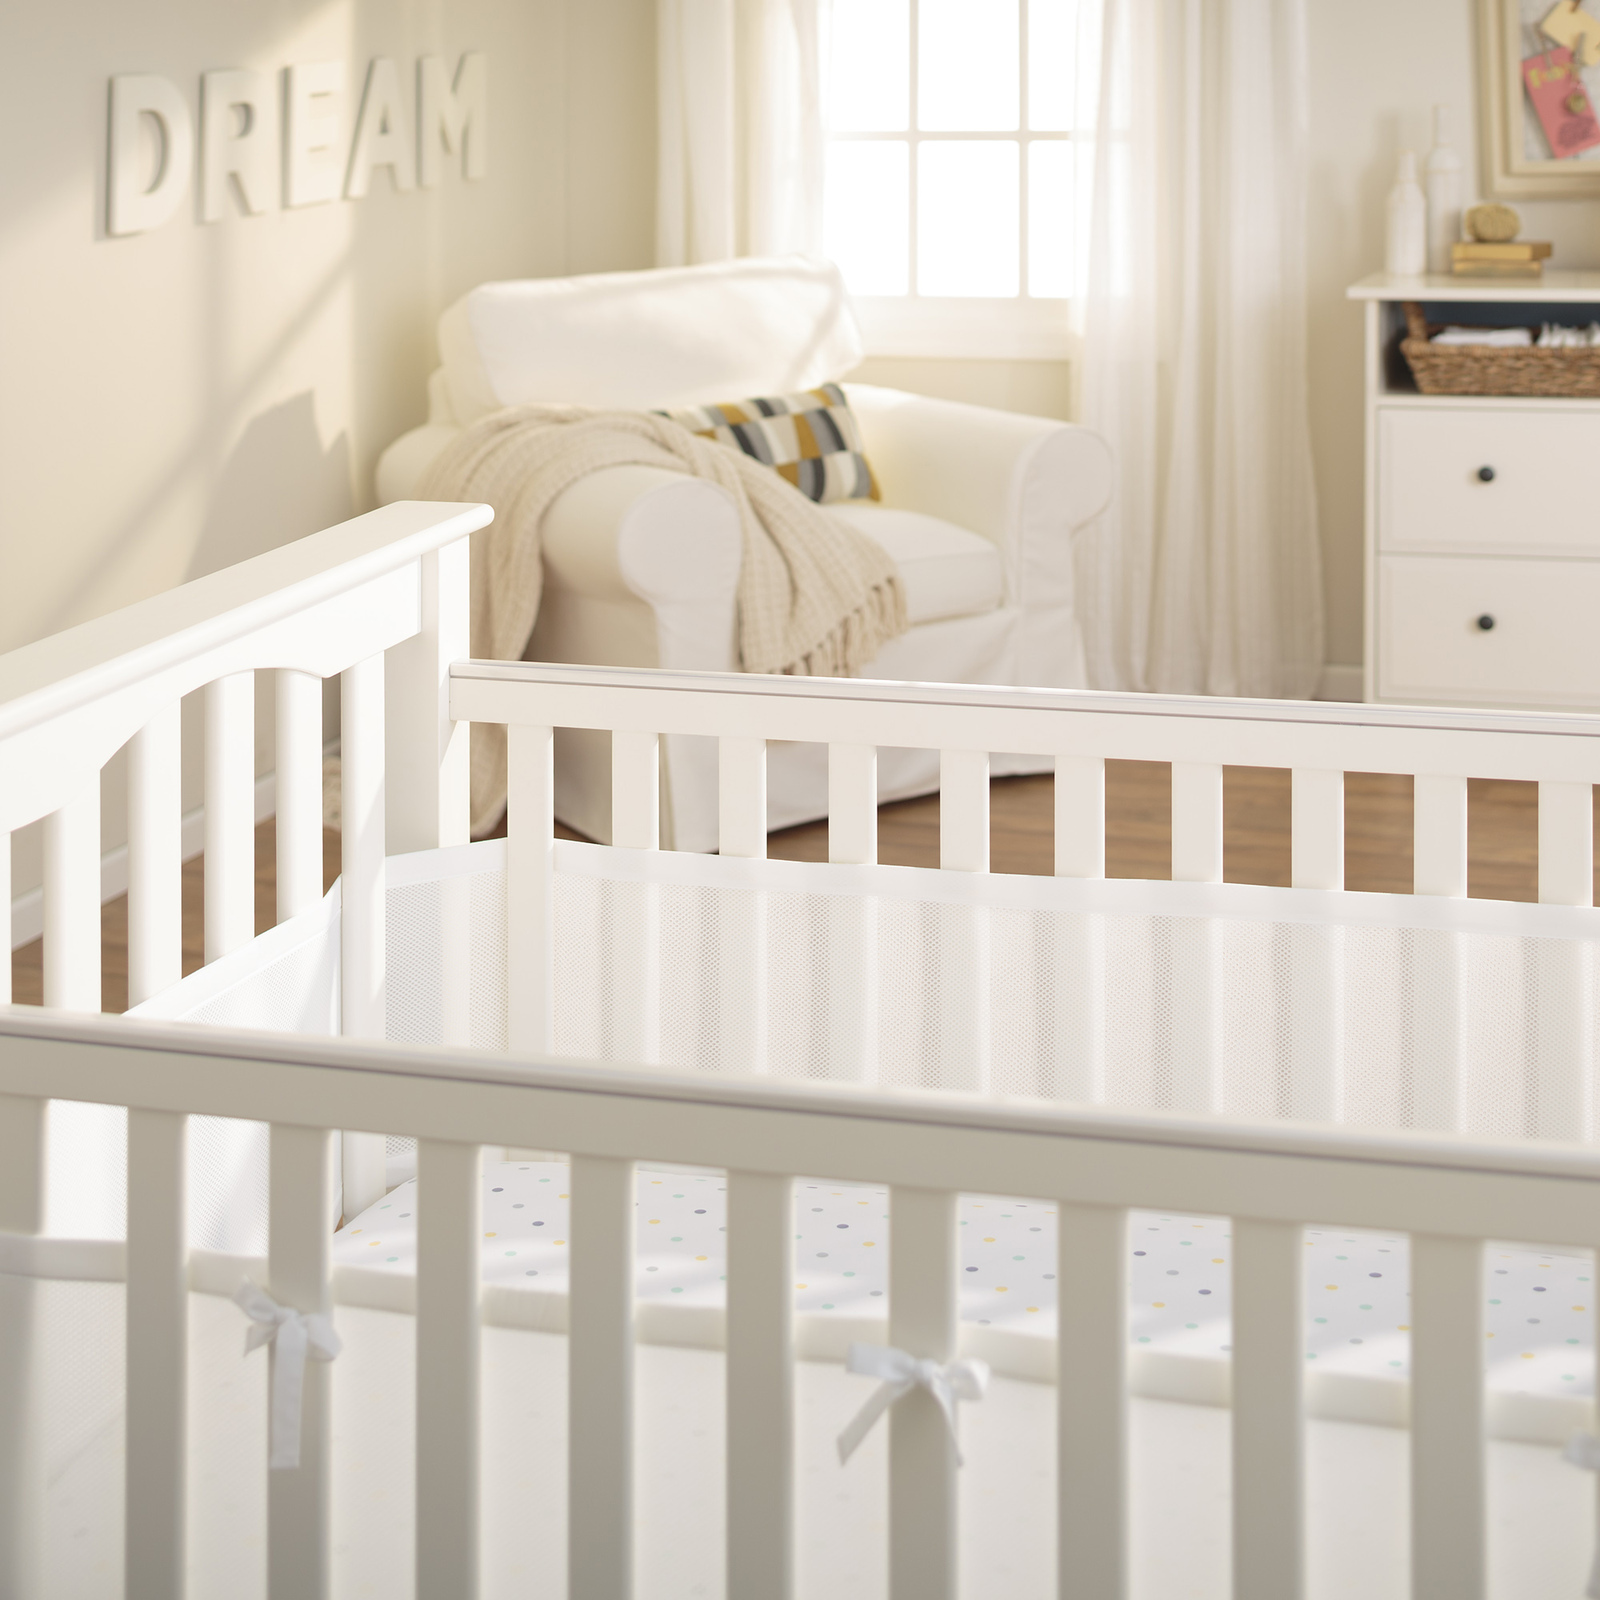 Buy Breathablebaby Breathable Mesh Cot Liner White At